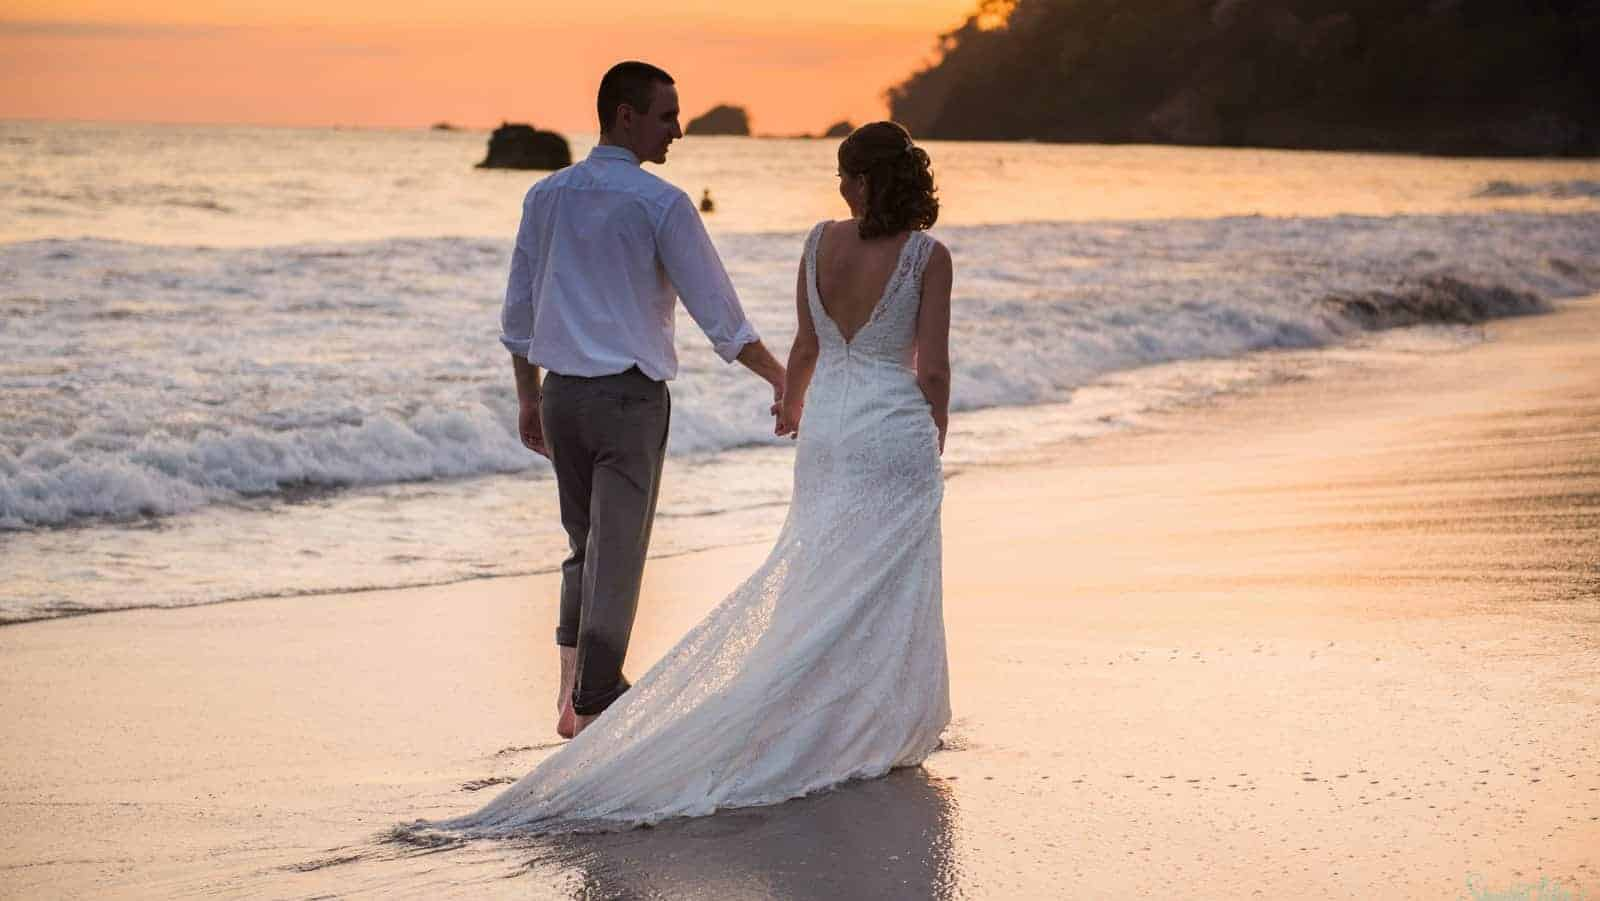 hotel-manuel antonio beach-costa rica-weddings-planning-events-wedding destinations-beach wedding